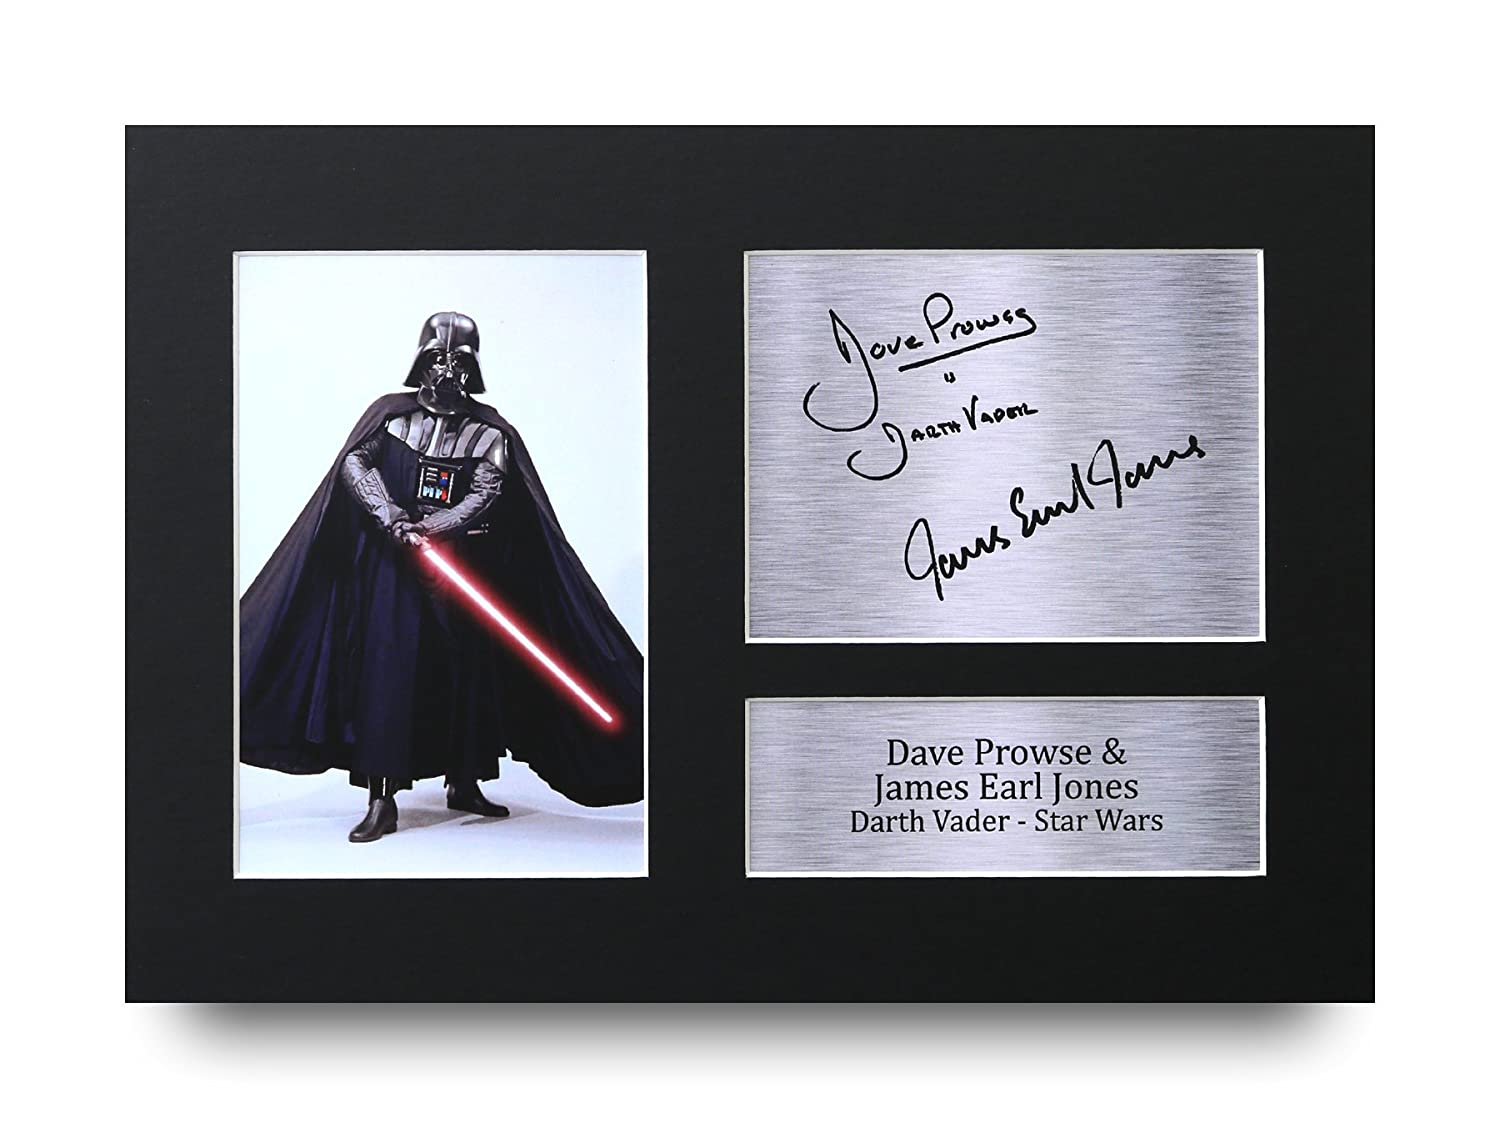 Amazon.de: A4 Bilderrahmen Star Wars Darth Vader Gedrucktes ...